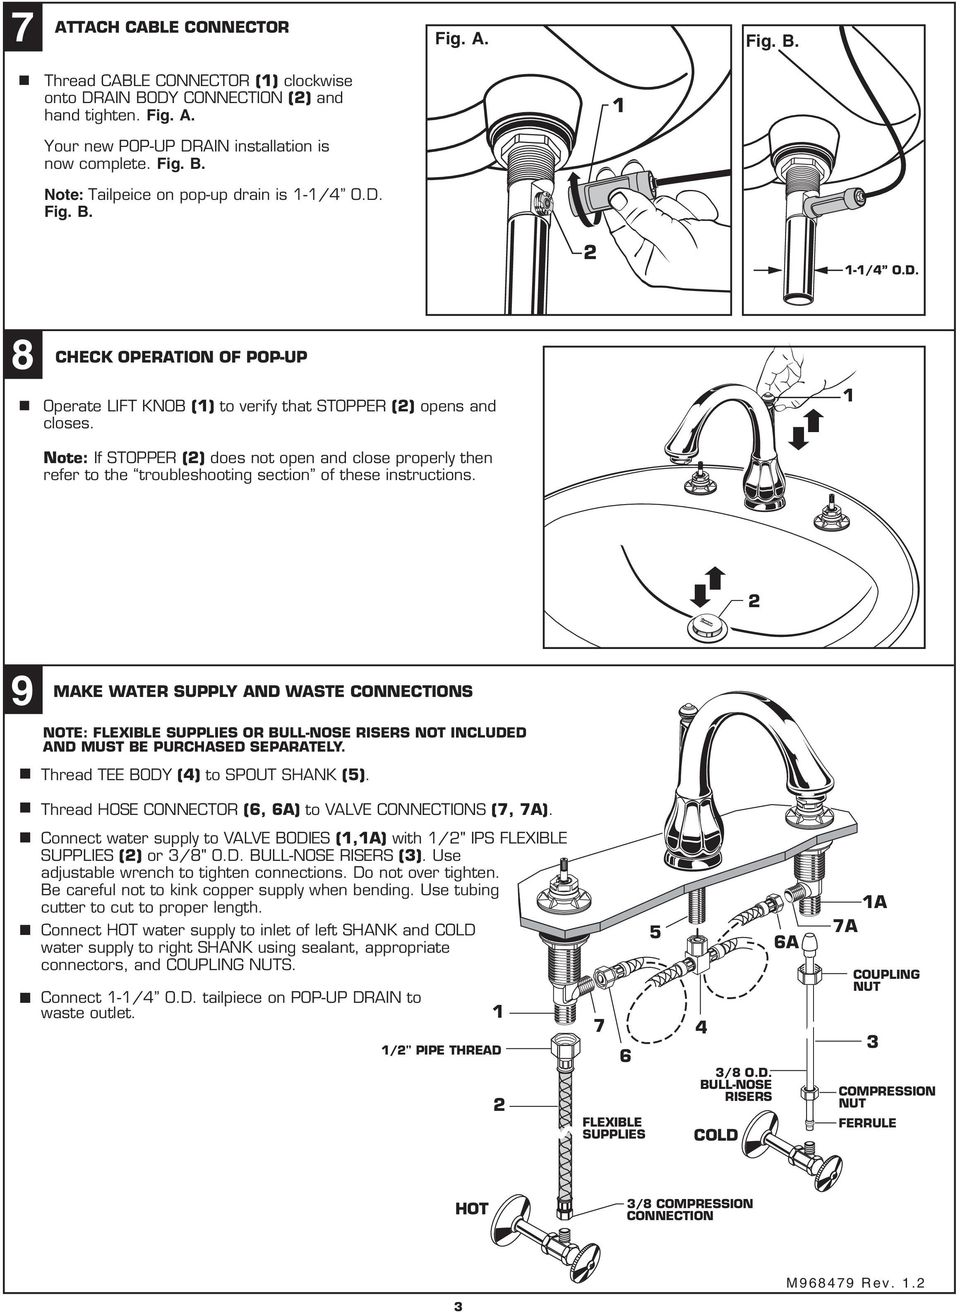 Note: If STOPPER () does not open and close properly then refer to the troubleshooting section of these instructions.